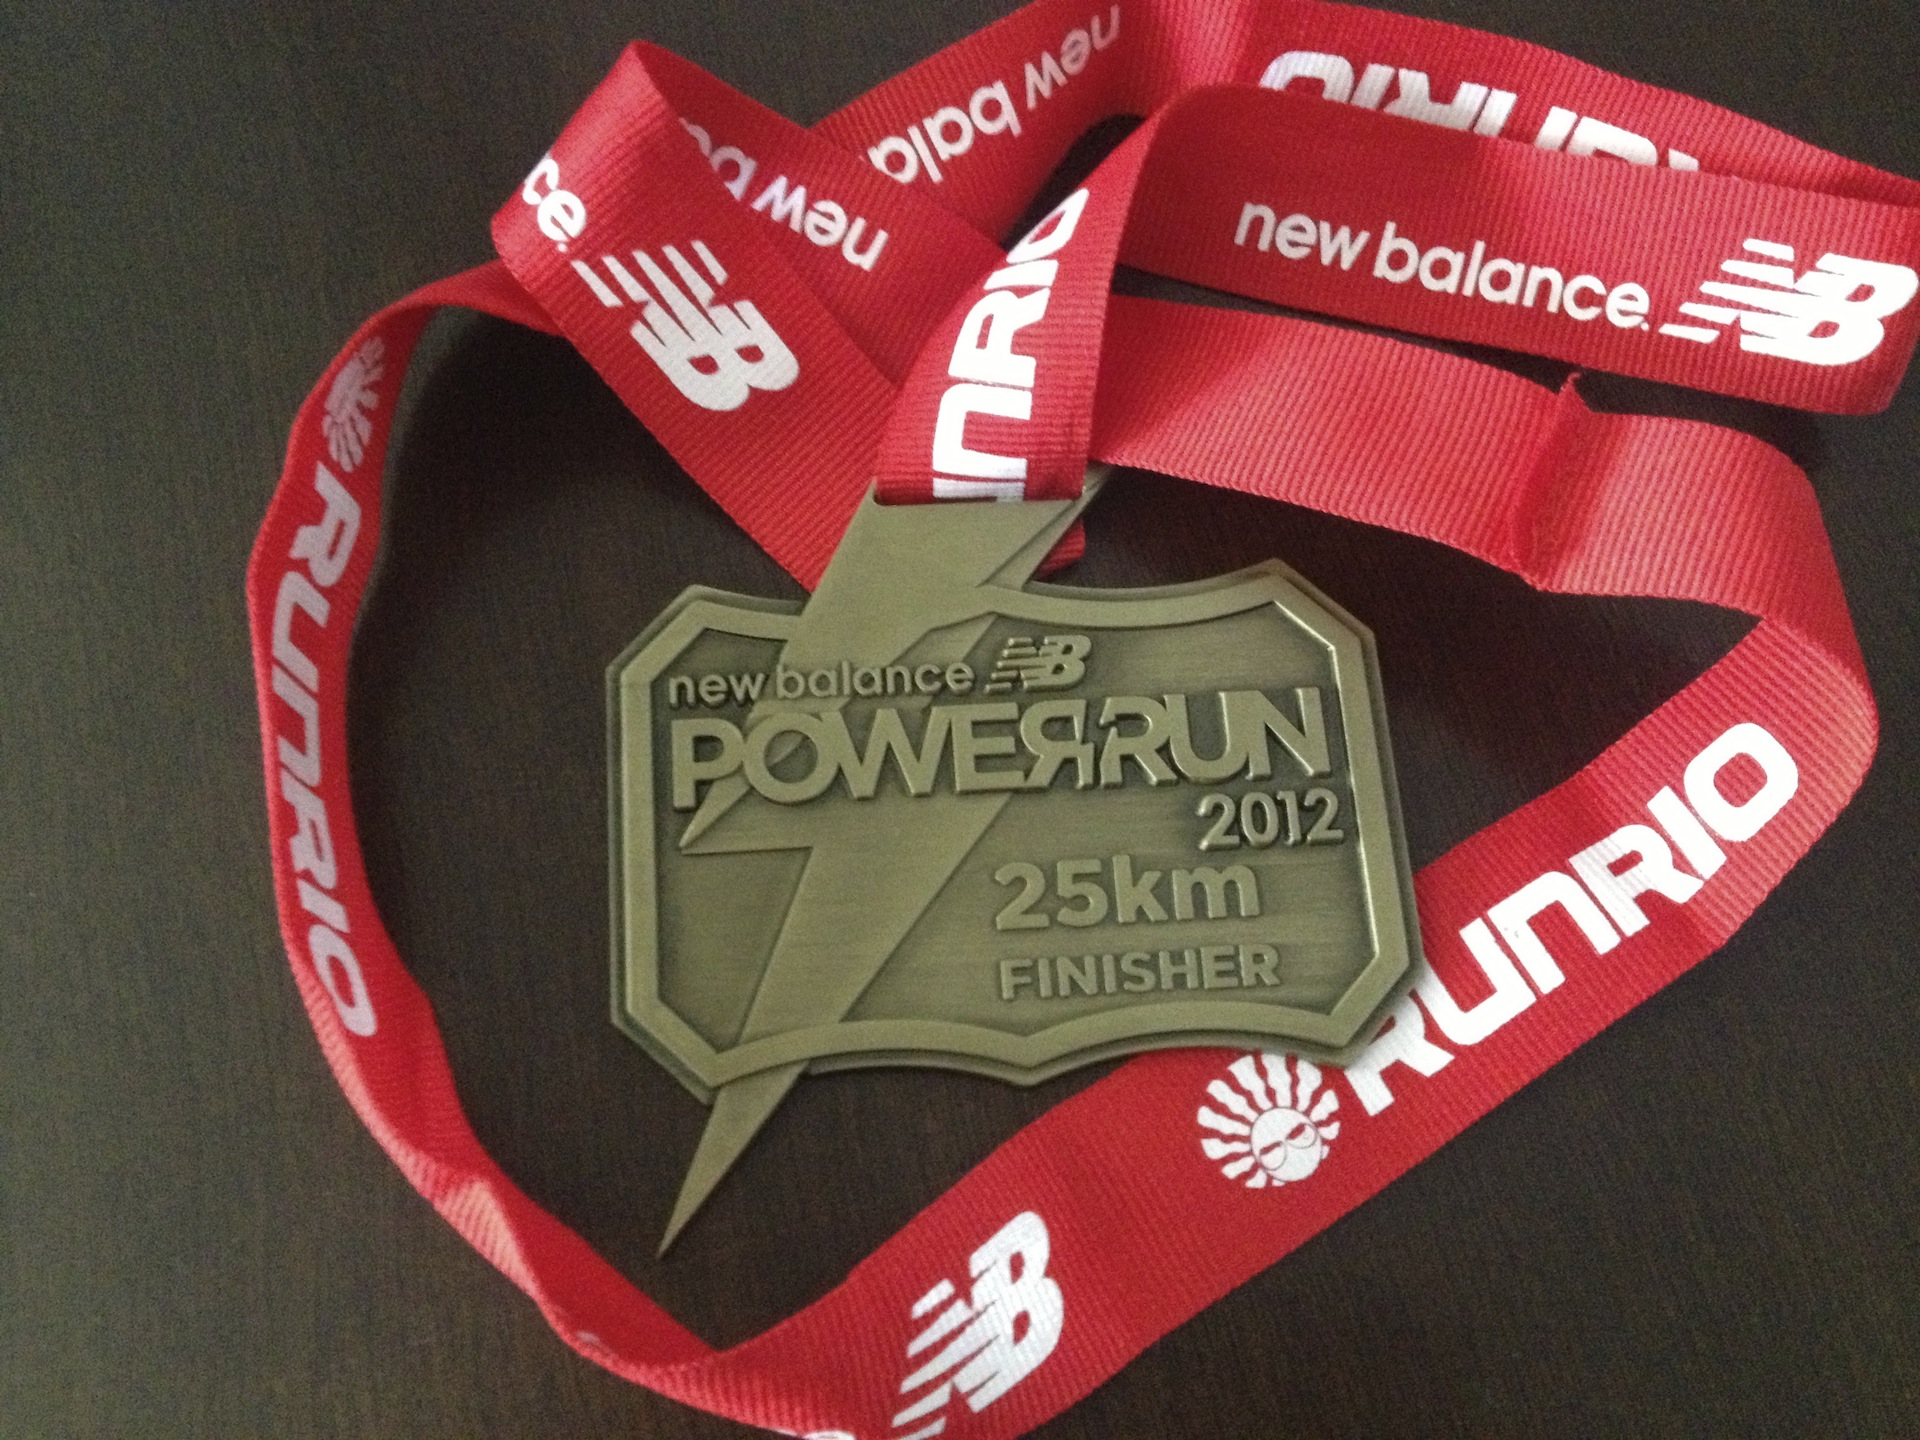 new balance power run 2016 medal